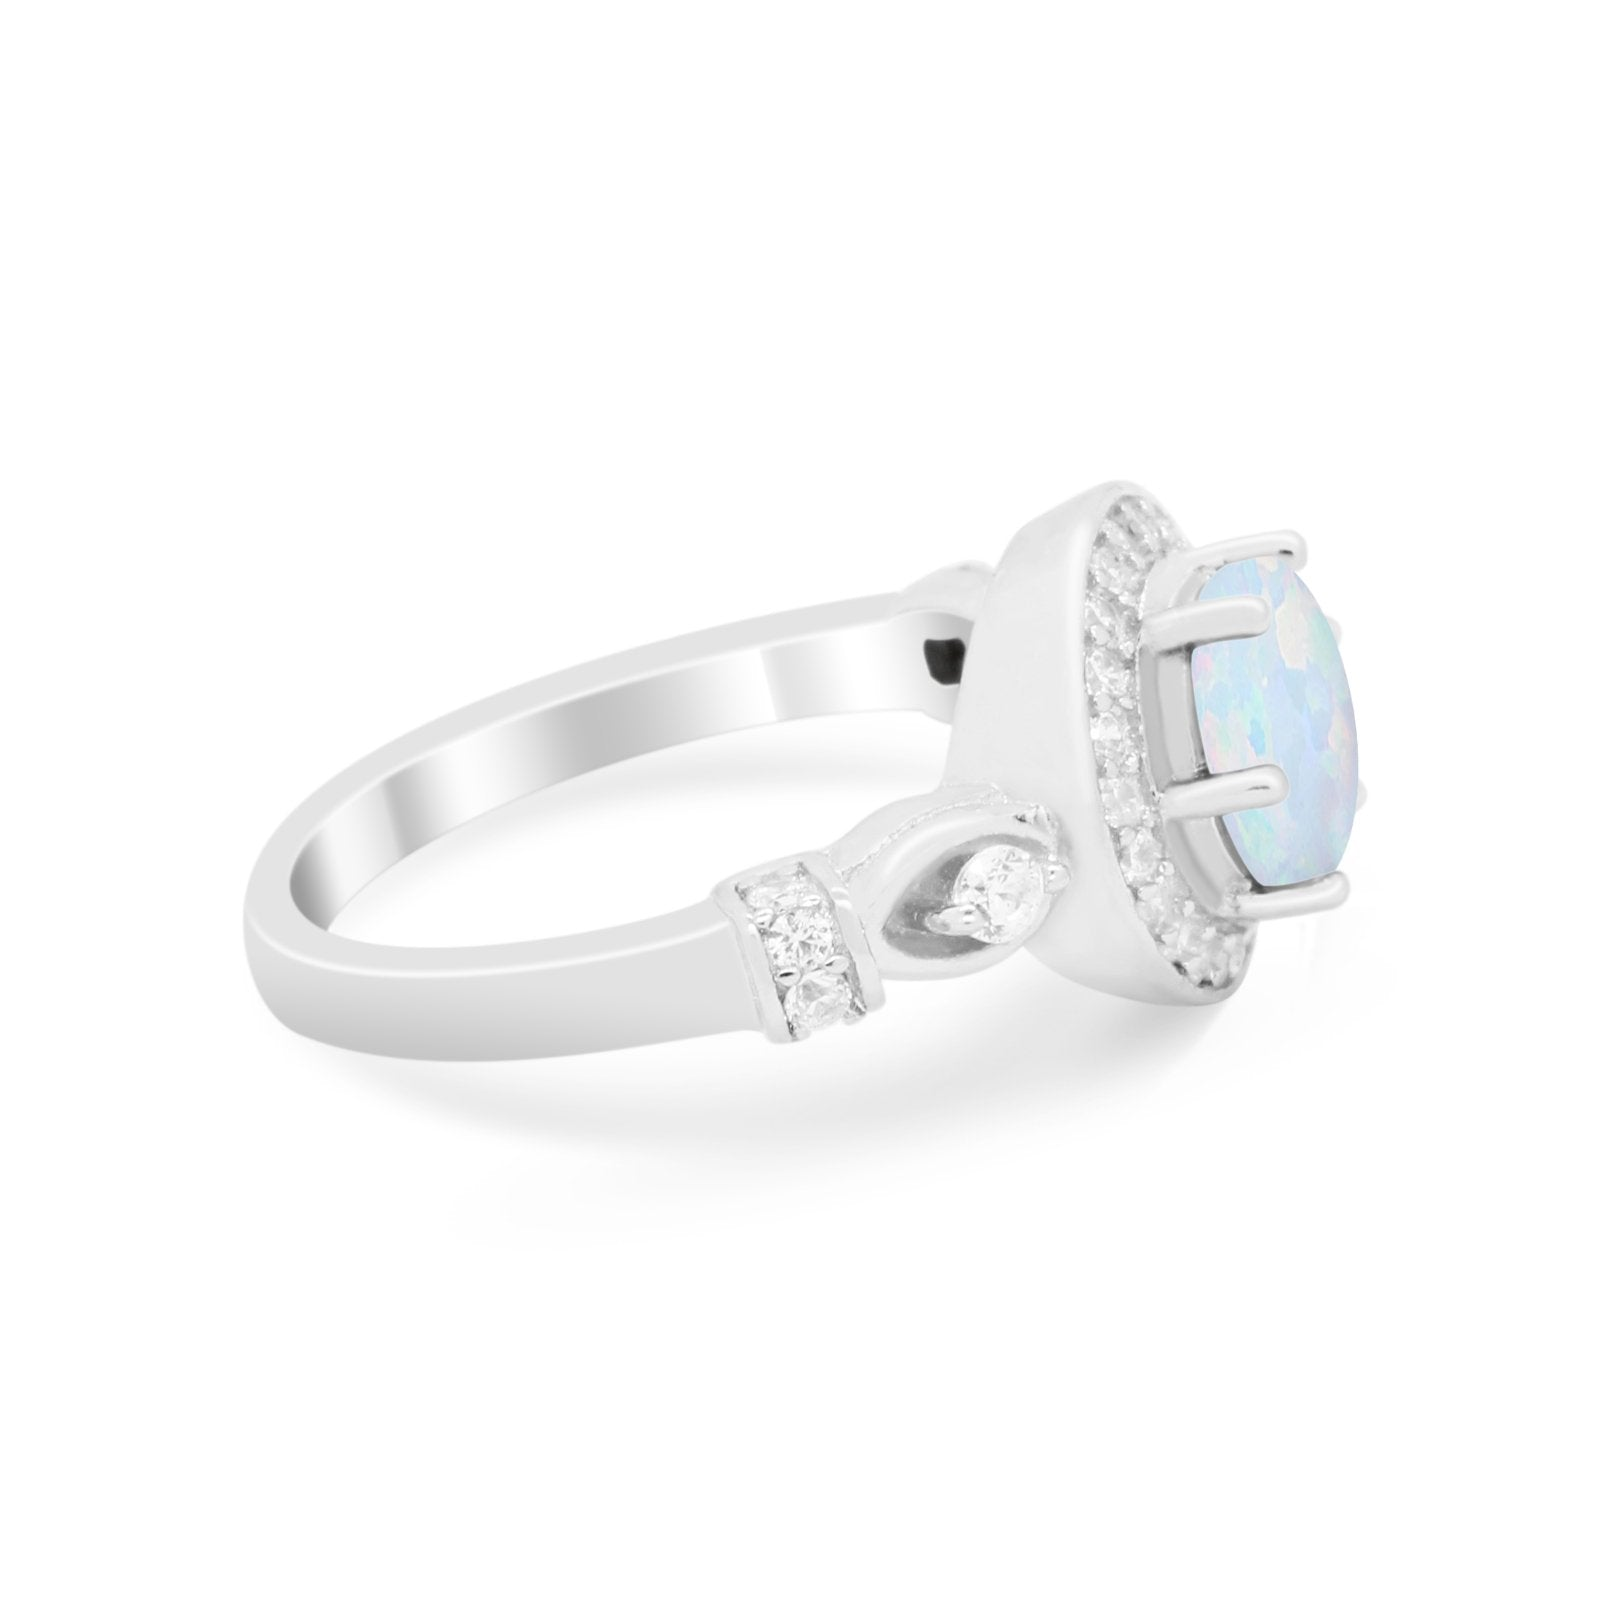 Halo Engagement Ring Simulated Cubic Zirconia 925 Sterling Silver